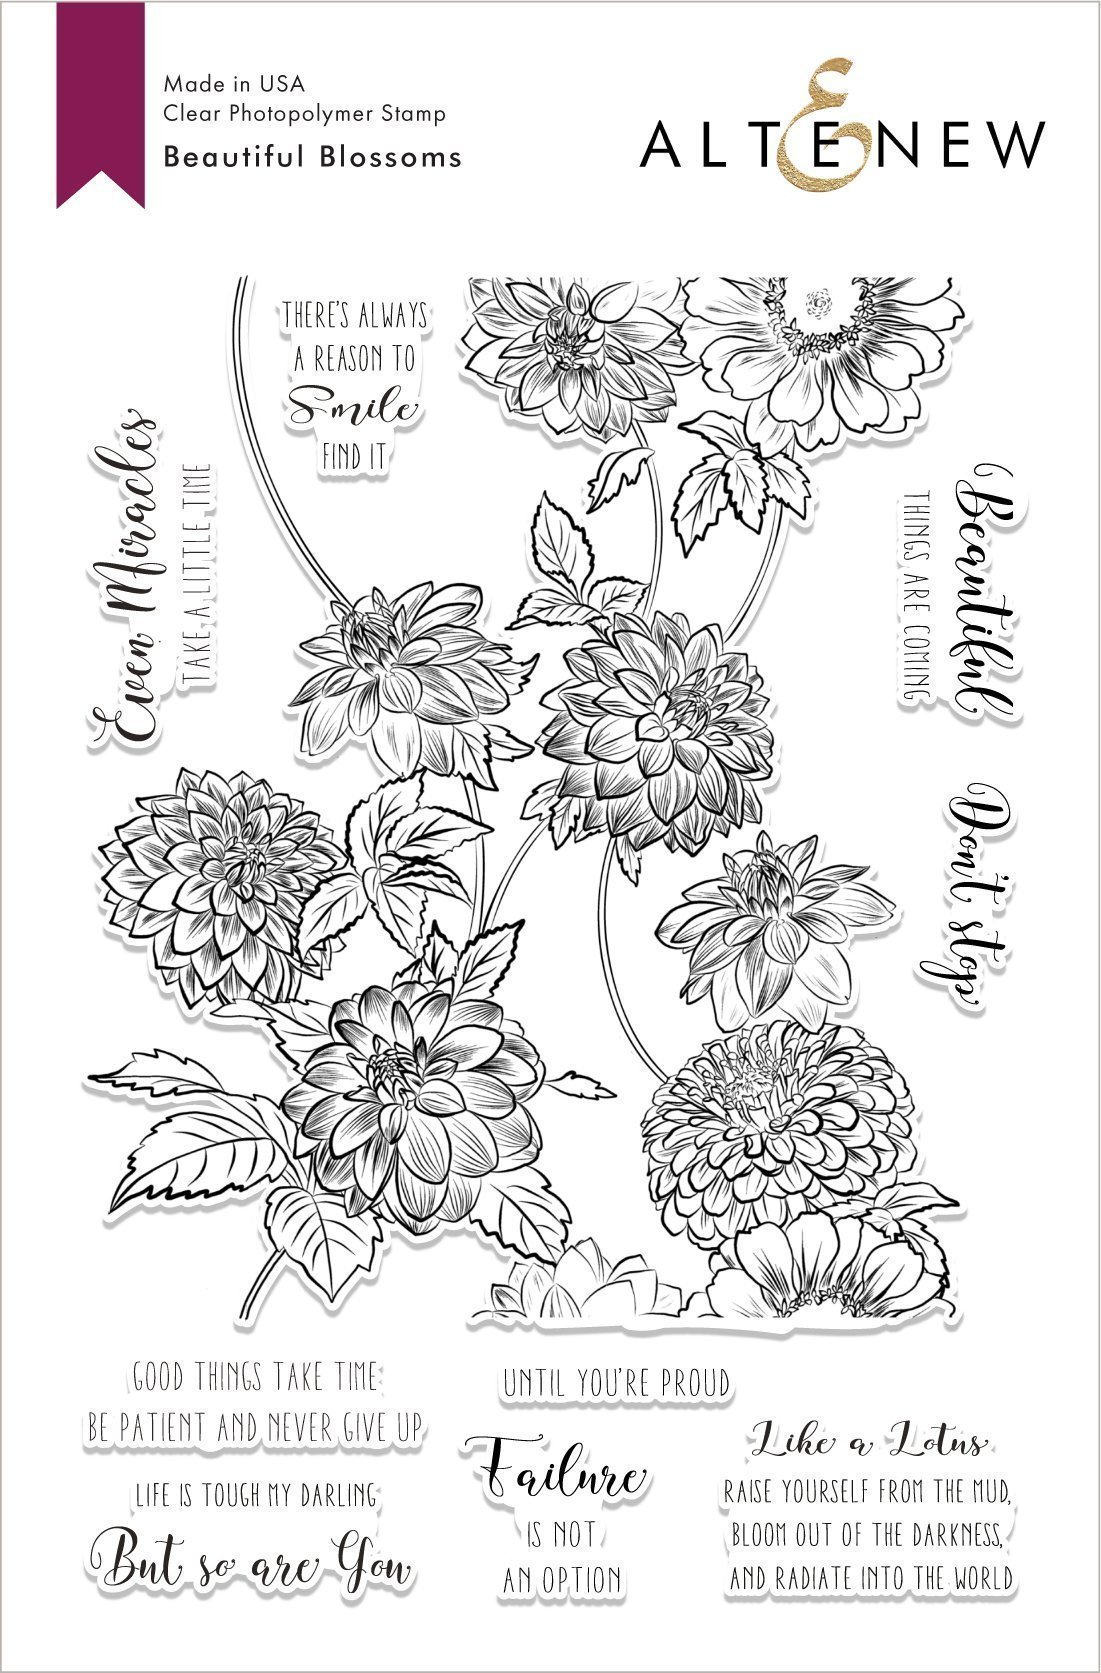 *NEW* - Altenew - Beautiful Blossoms Stamp Set